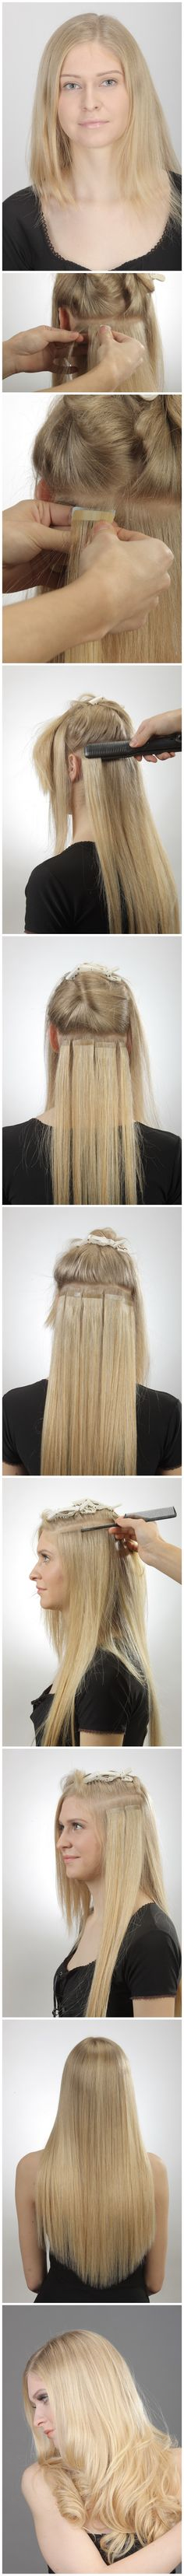 Ron King Invisible Hair Extensions Trendy Hairstyles In The Usa